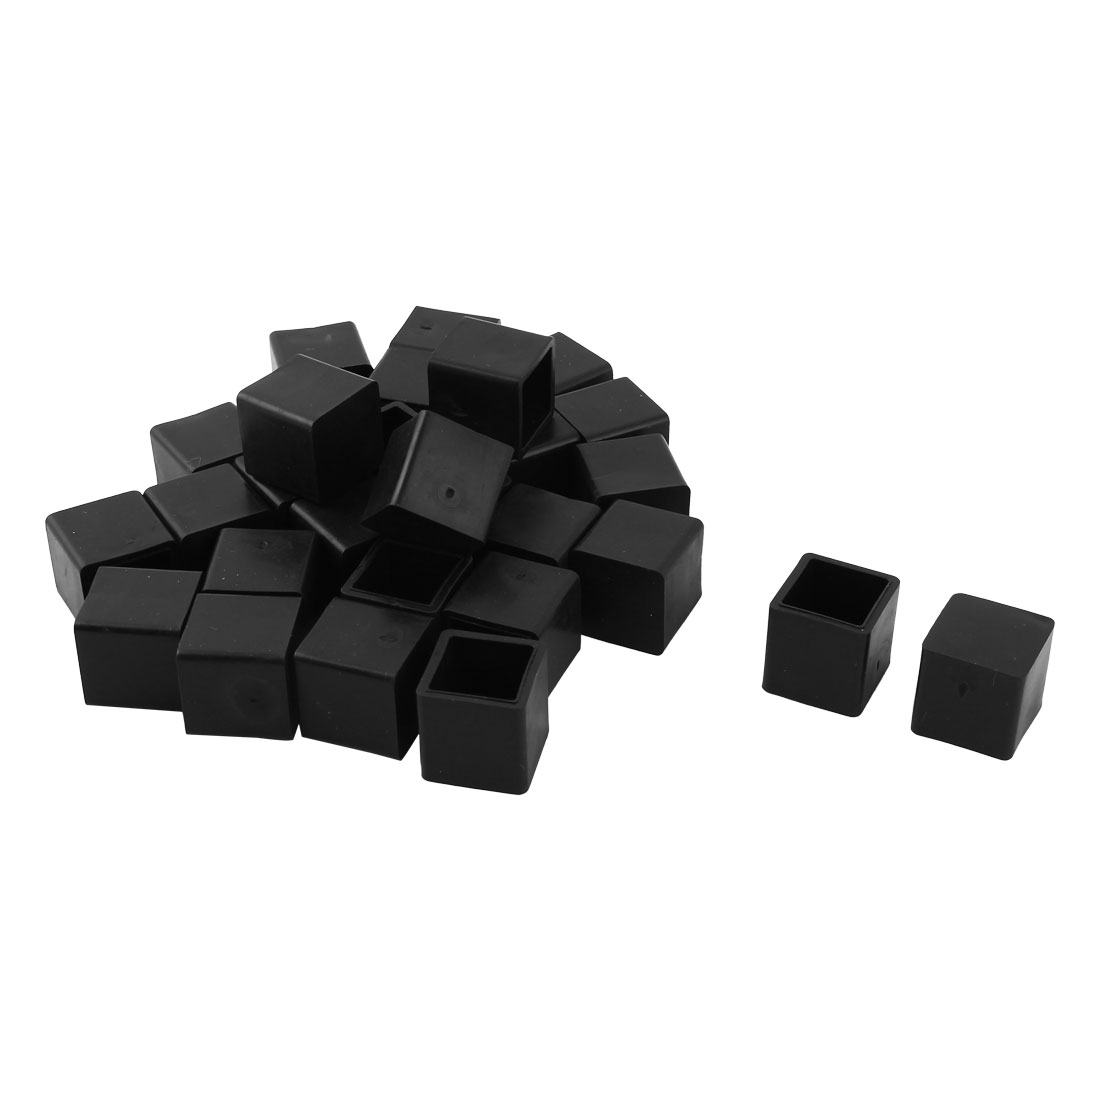 Home Rubber Furniture Foot Anti-slip Protector Cover Black 20mm x 20mm 29 Pcs